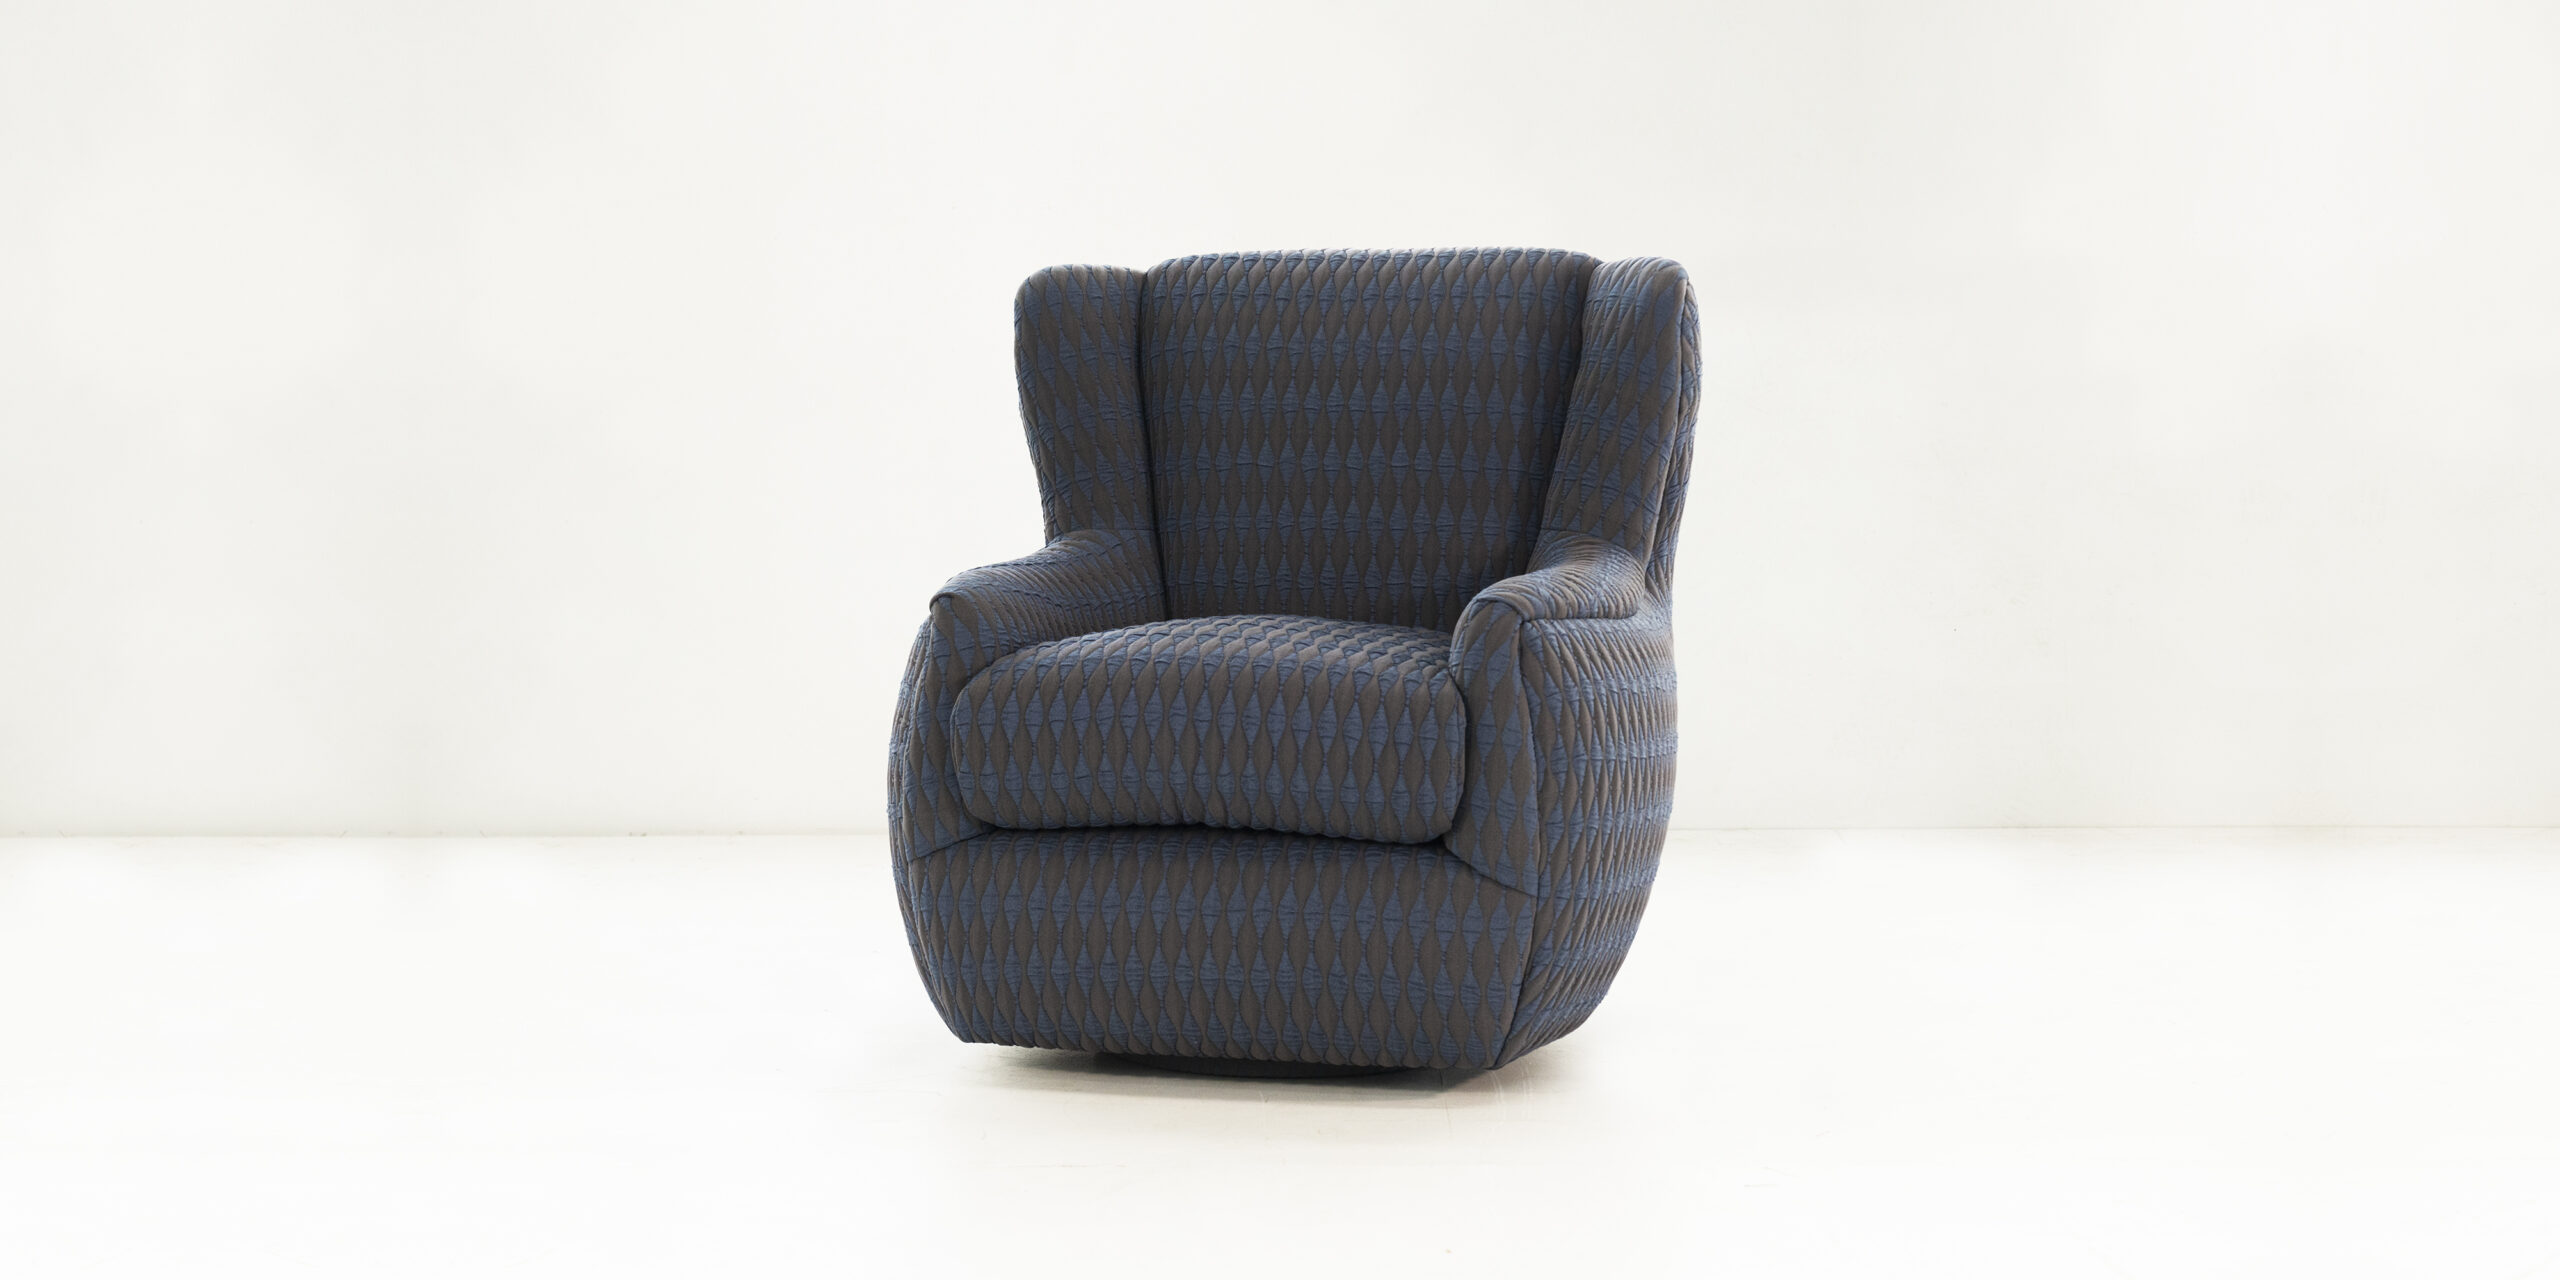 The TEDDY swivel wing chair